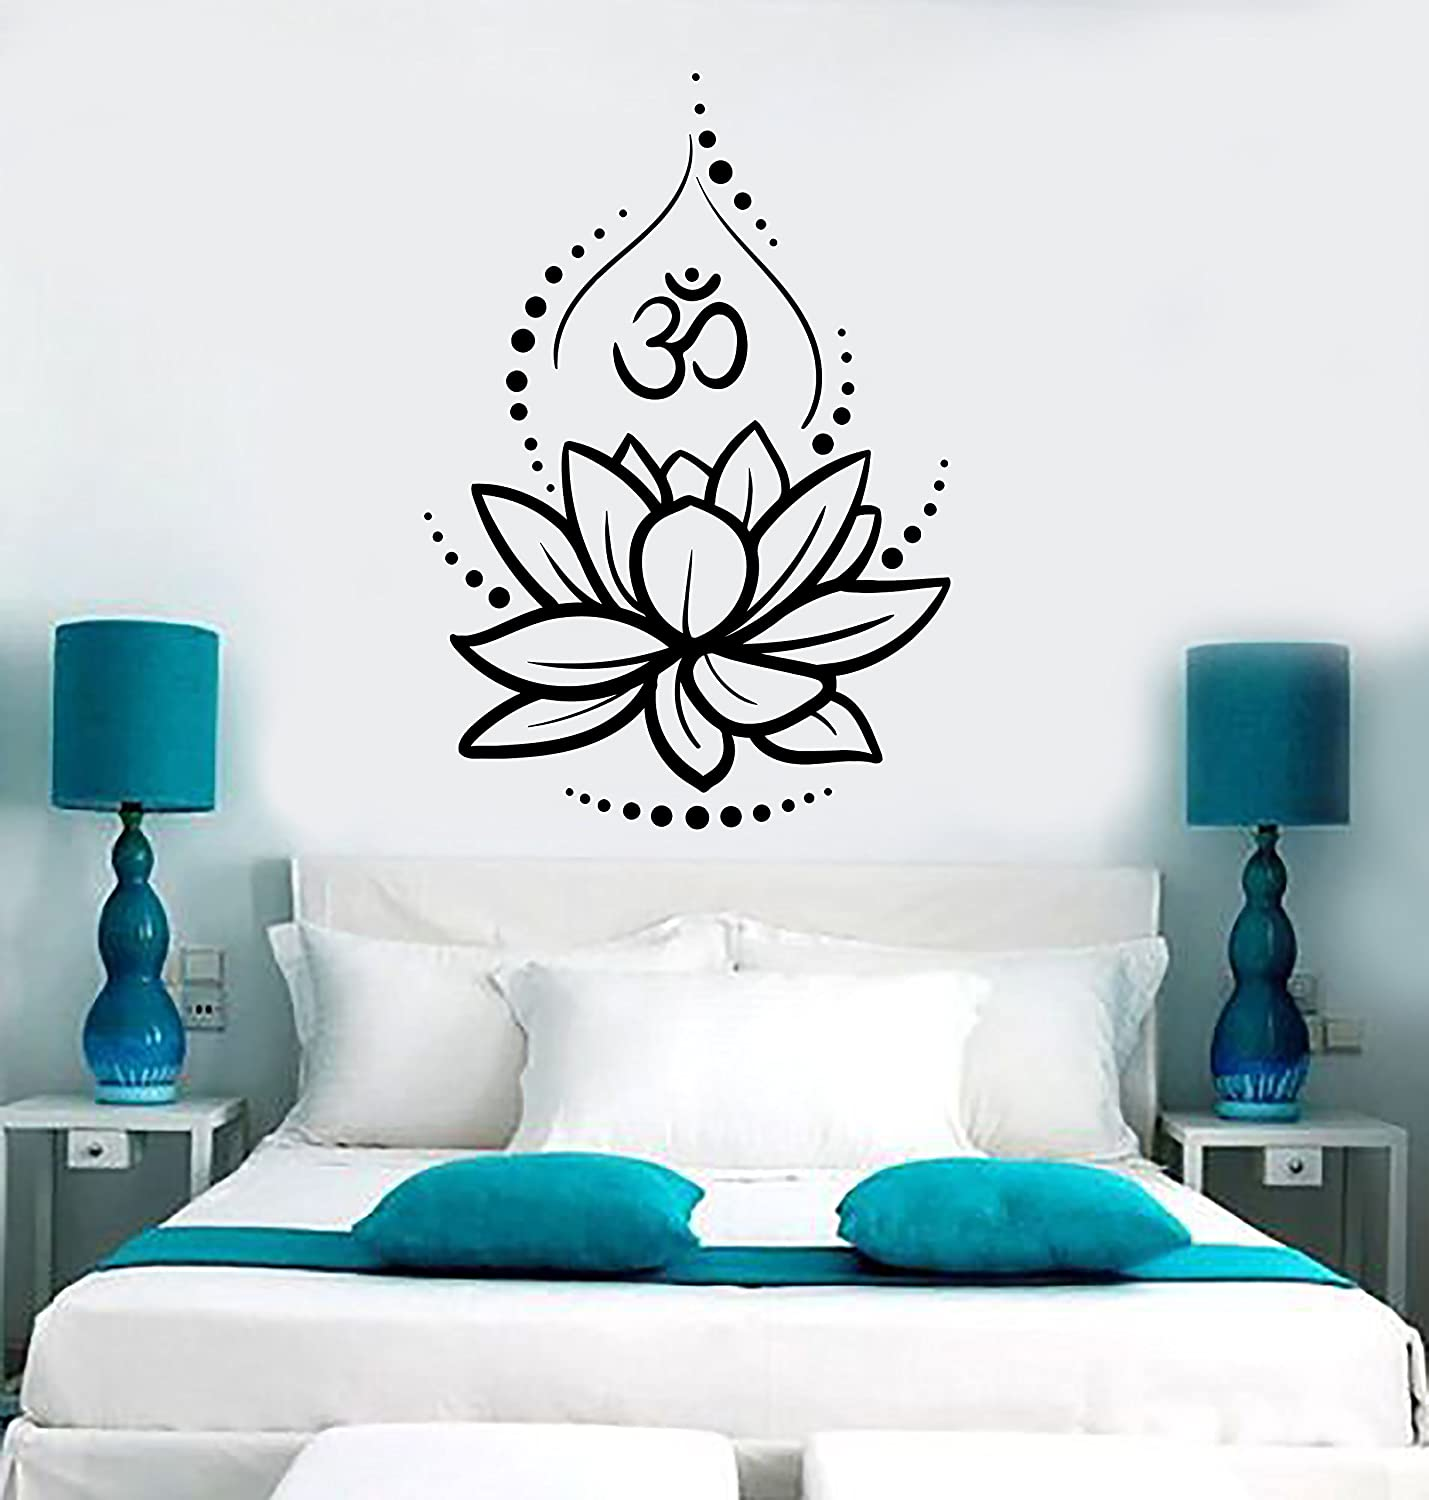 Large Vinyl Wall Decal Lotus Flower Yoga Hinduism Hindu Om Symbol Stickers Large Decor (ig4625) Black